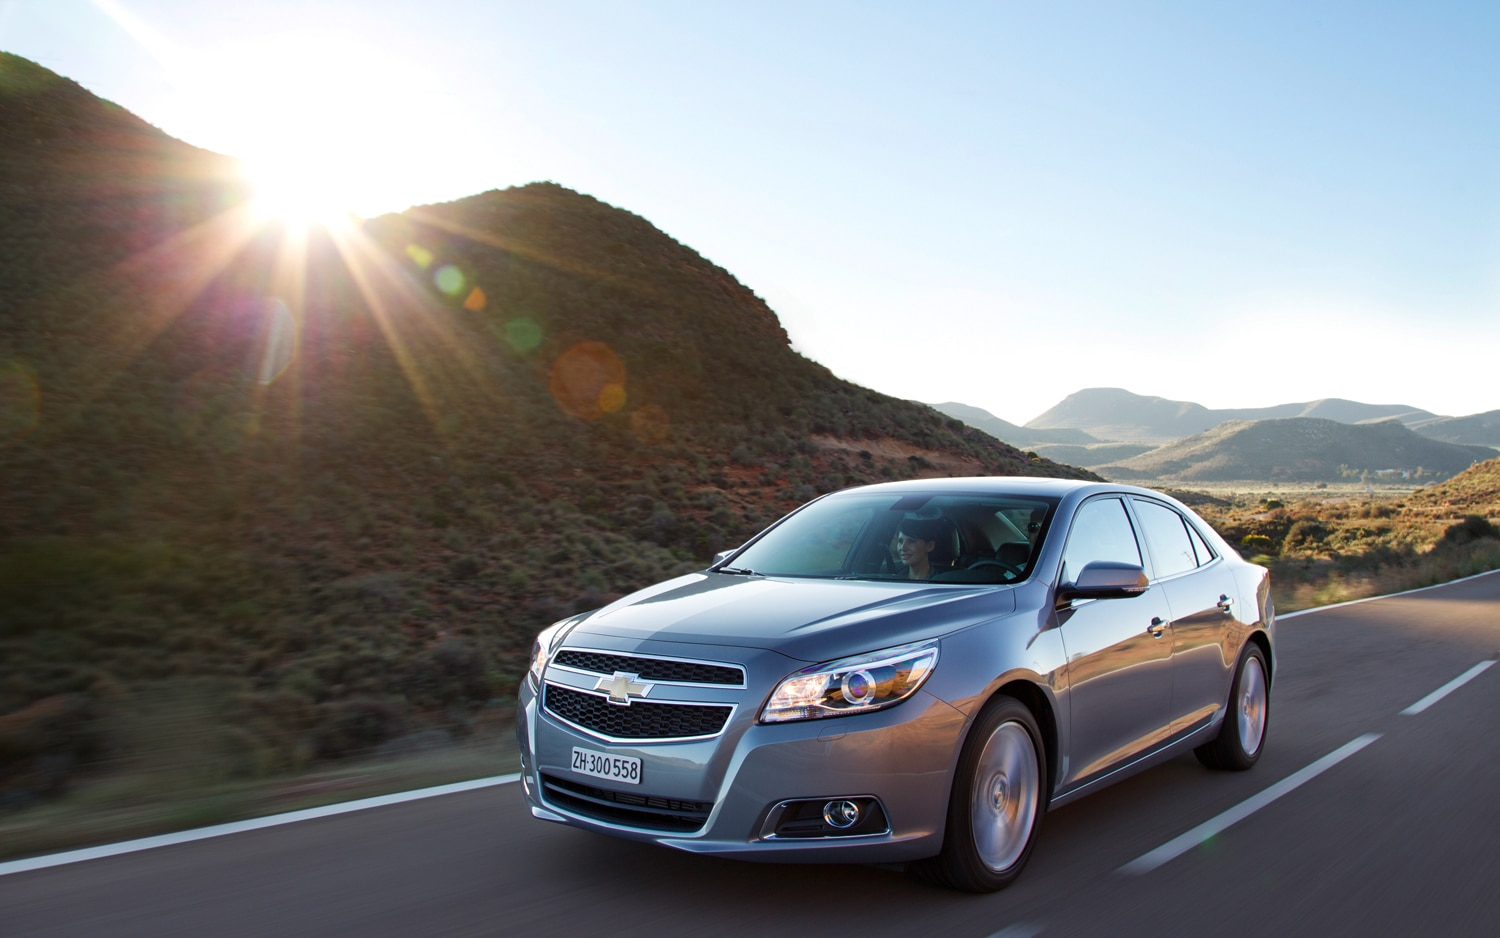 2013 Chevrolet Malibu Front Three Quarter In Motion1